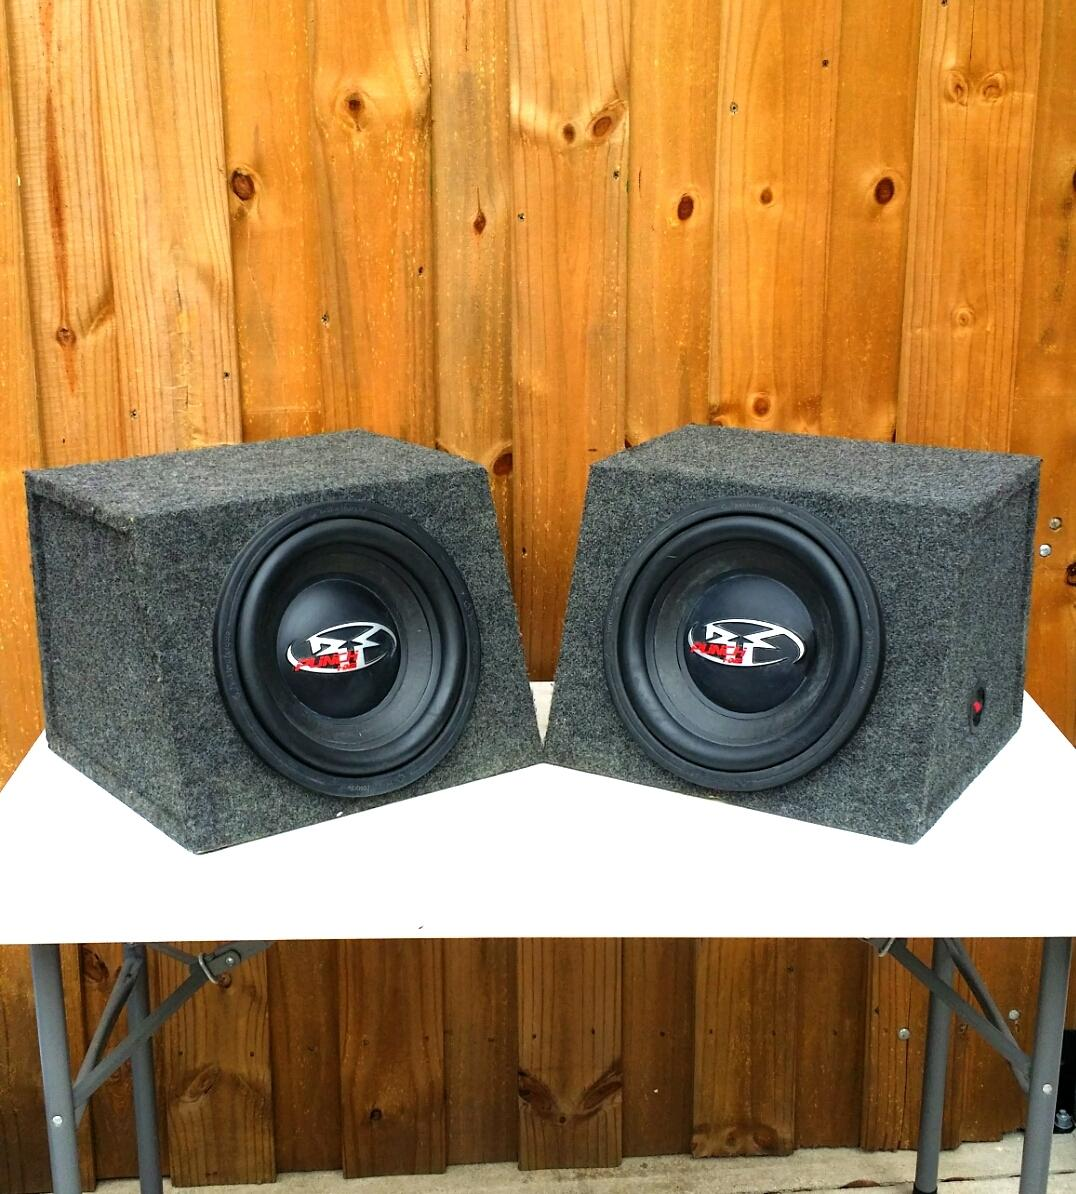 Find More Two Rockford Fosgate 12 Power Hx2 Subwoofers In Metra Boxes For Sale At Up To 90 Off